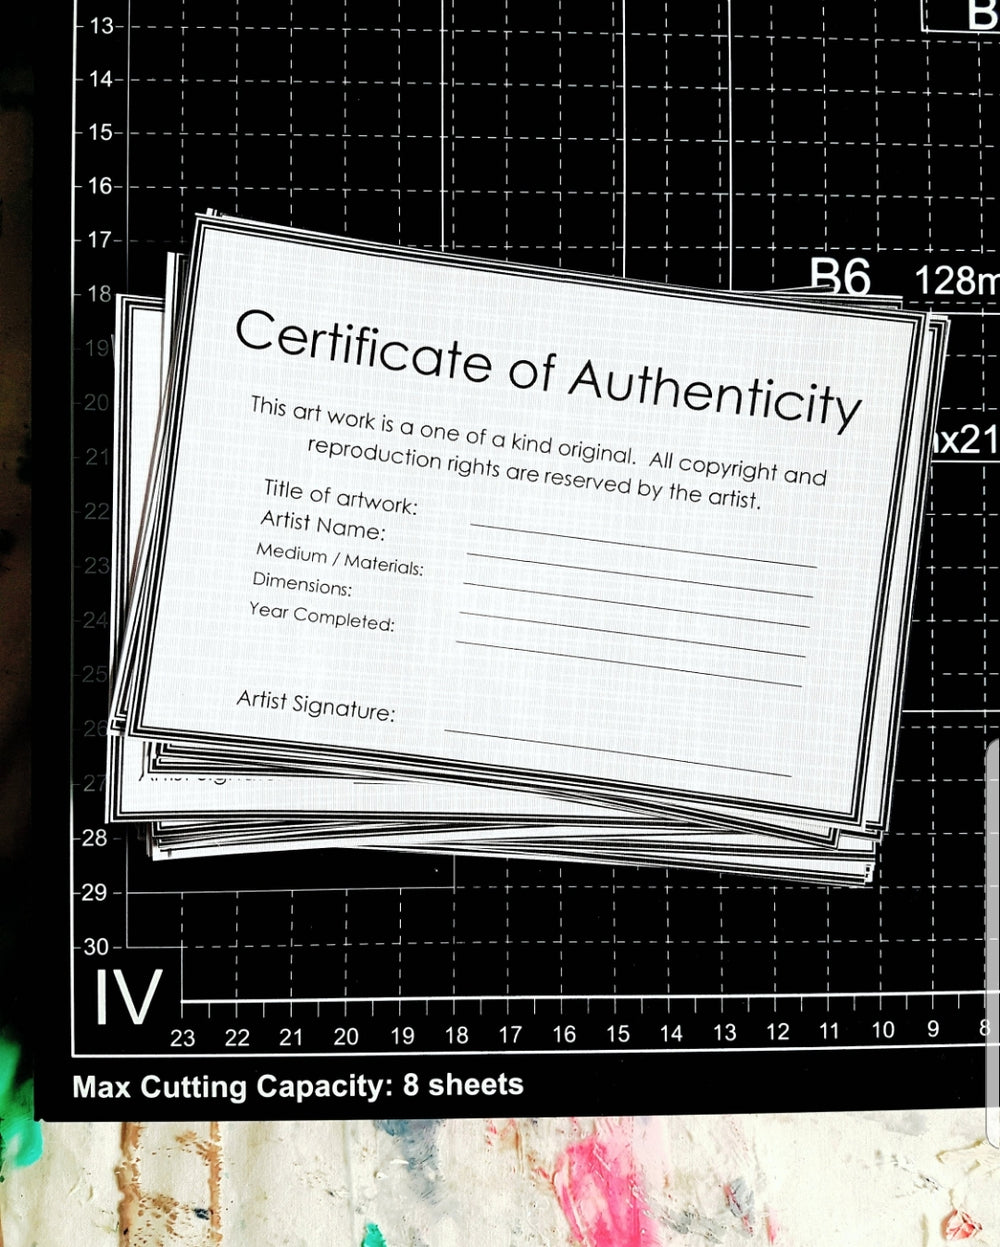 Certificate of authenticity digital downloads for original art works, limited edition fine art prints / giclee prints and photographic prints